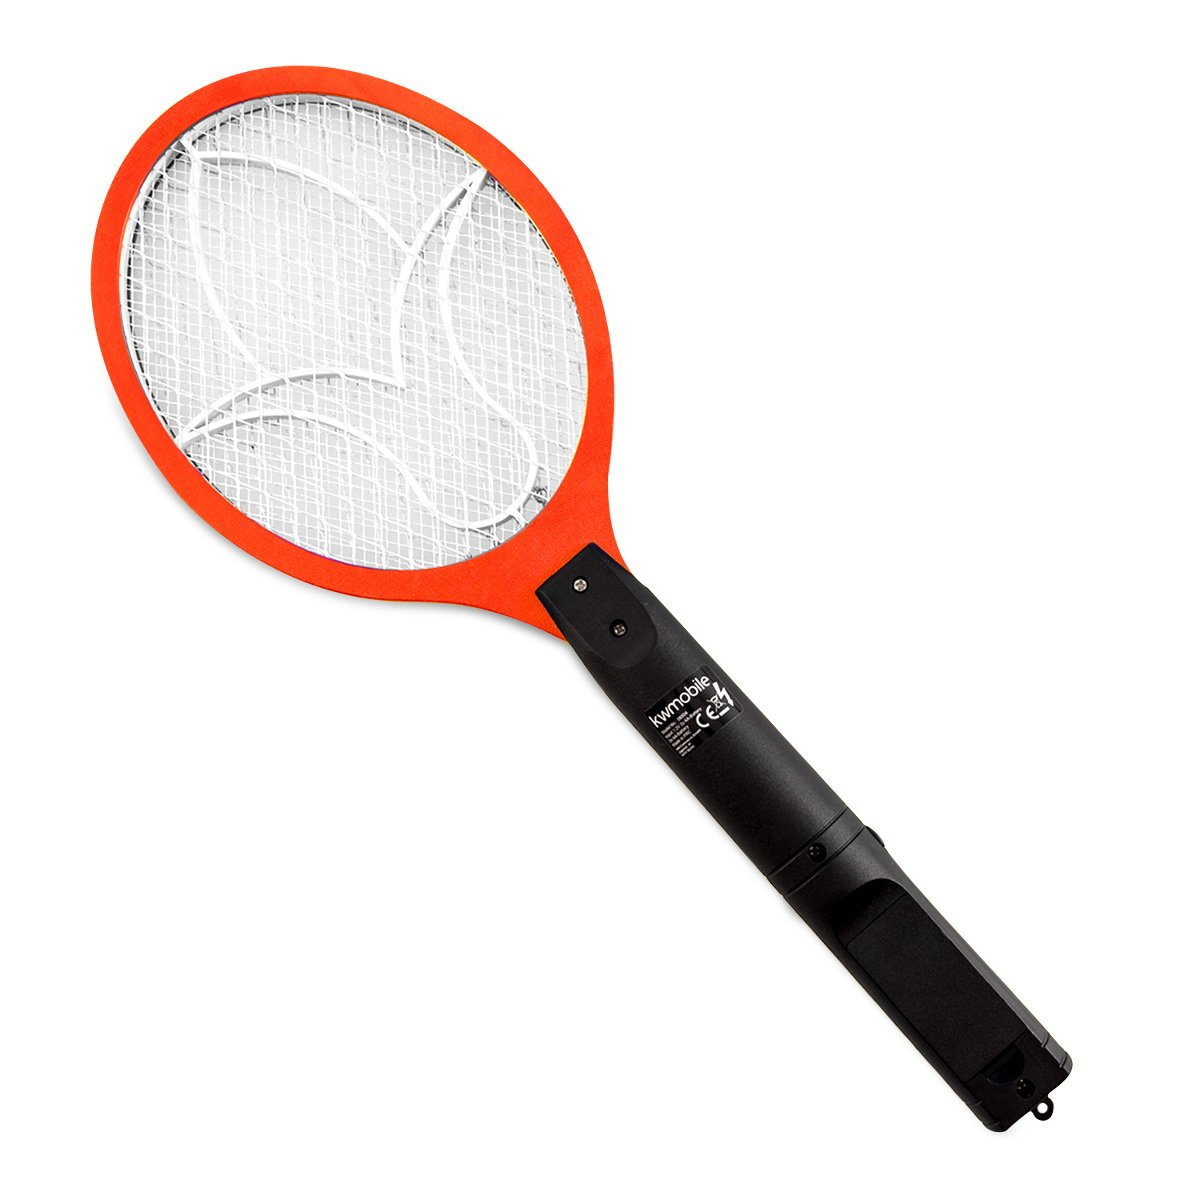 kwmobile Electric Bug Zapper - Fly Swatter Mosquito Bug Killer Indoor Outdoor Use Battery Operated Home Pest Control KW-Commerce 38004.09_m000577